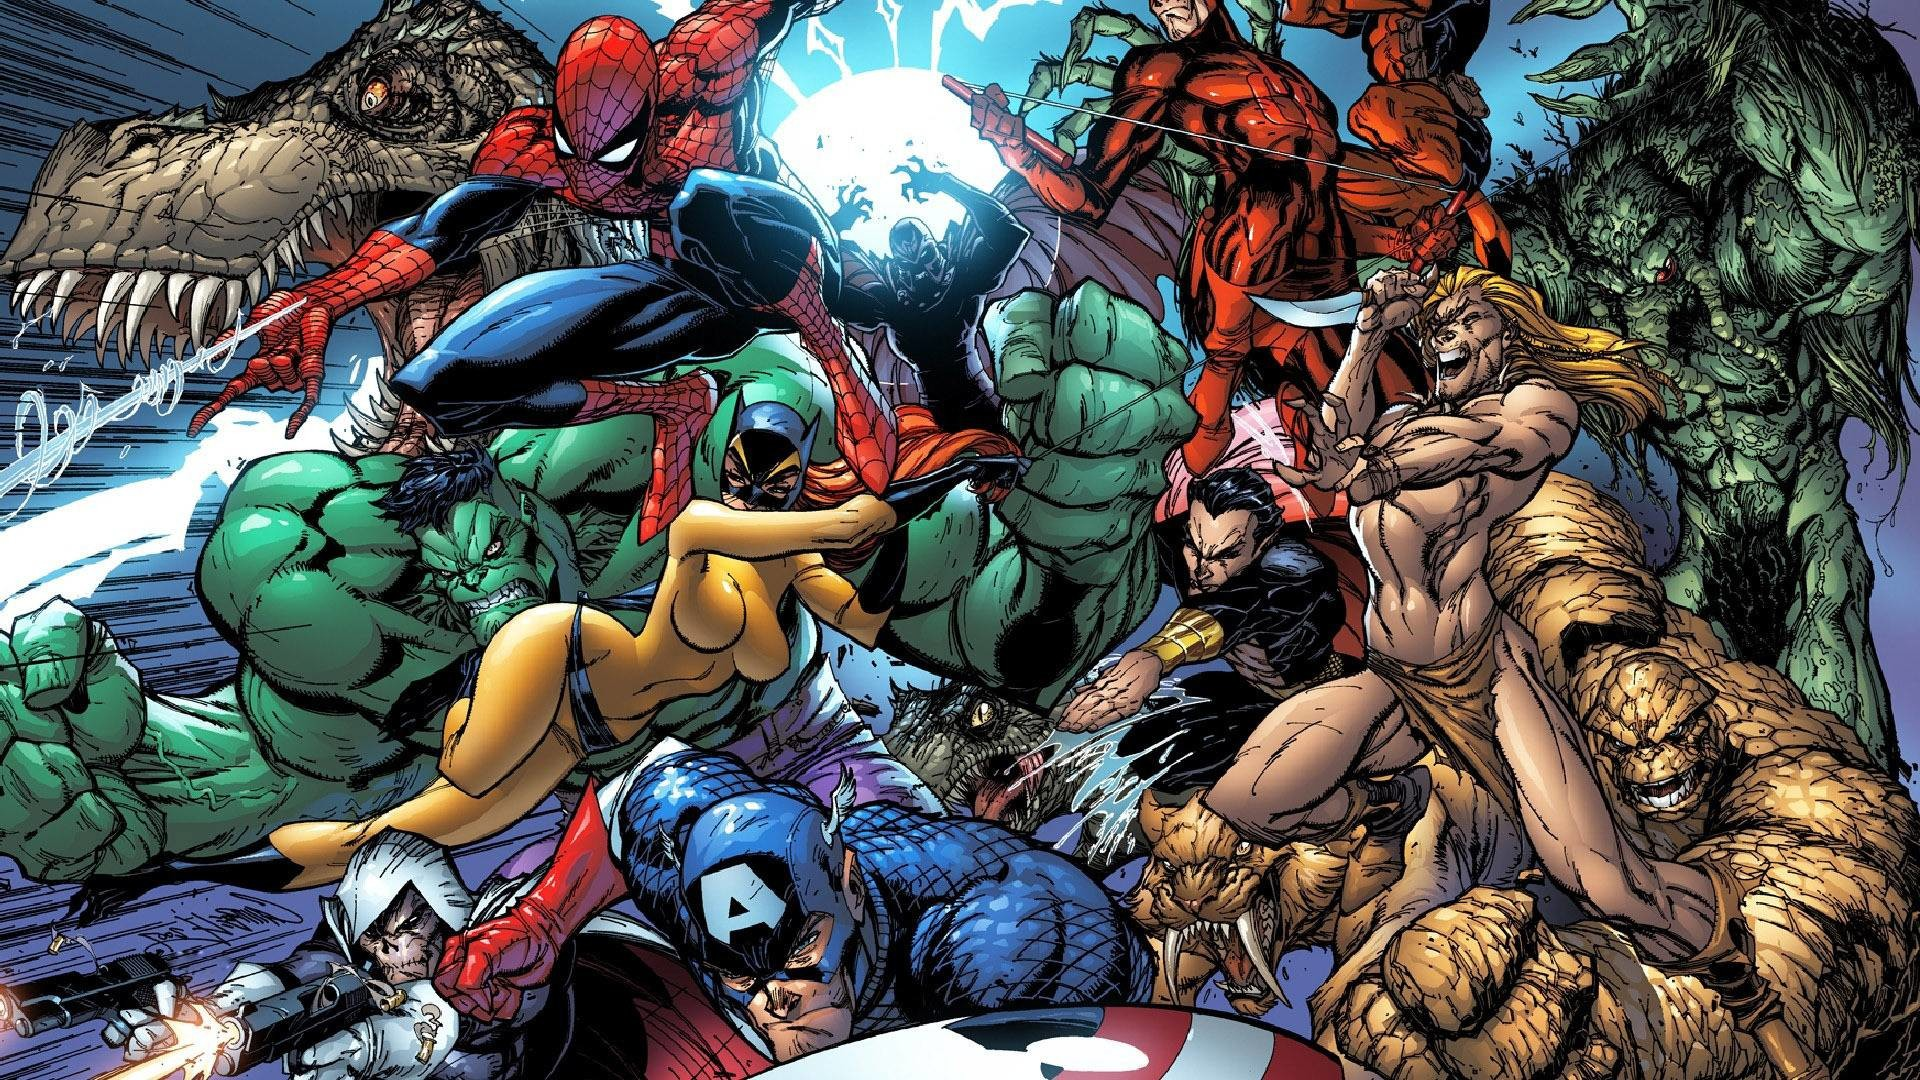 Must see Wallpaper Mac Marvel - 479454-top-marvel-villains-wallpaper-1920x1080-mac  Collection_583823.jpg